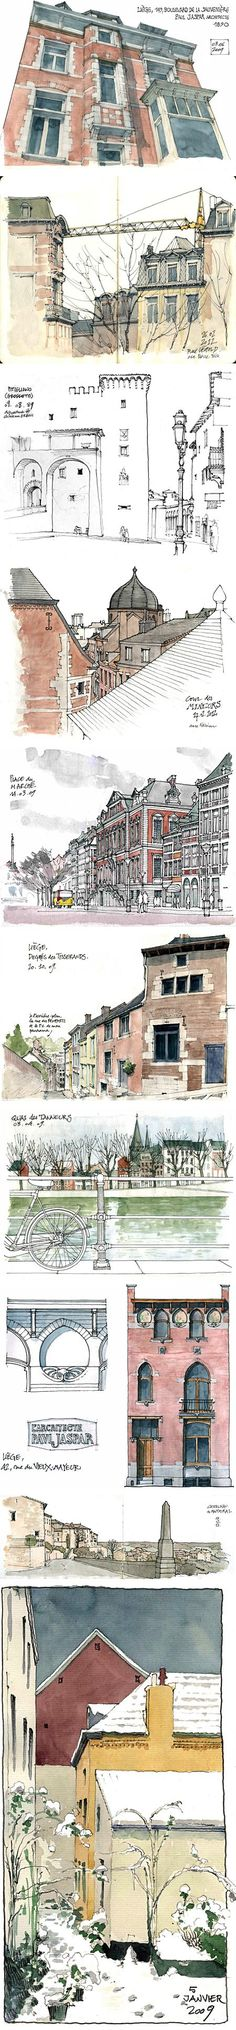 Watercolour architecture paintings by Gérard Michel. Drawing Sketches, Art Drawings, Arte Sketchbook, Illustration Art, Illustrations, Urban Sketchers, Chiaroscuro, Architecture Drawings, Michel